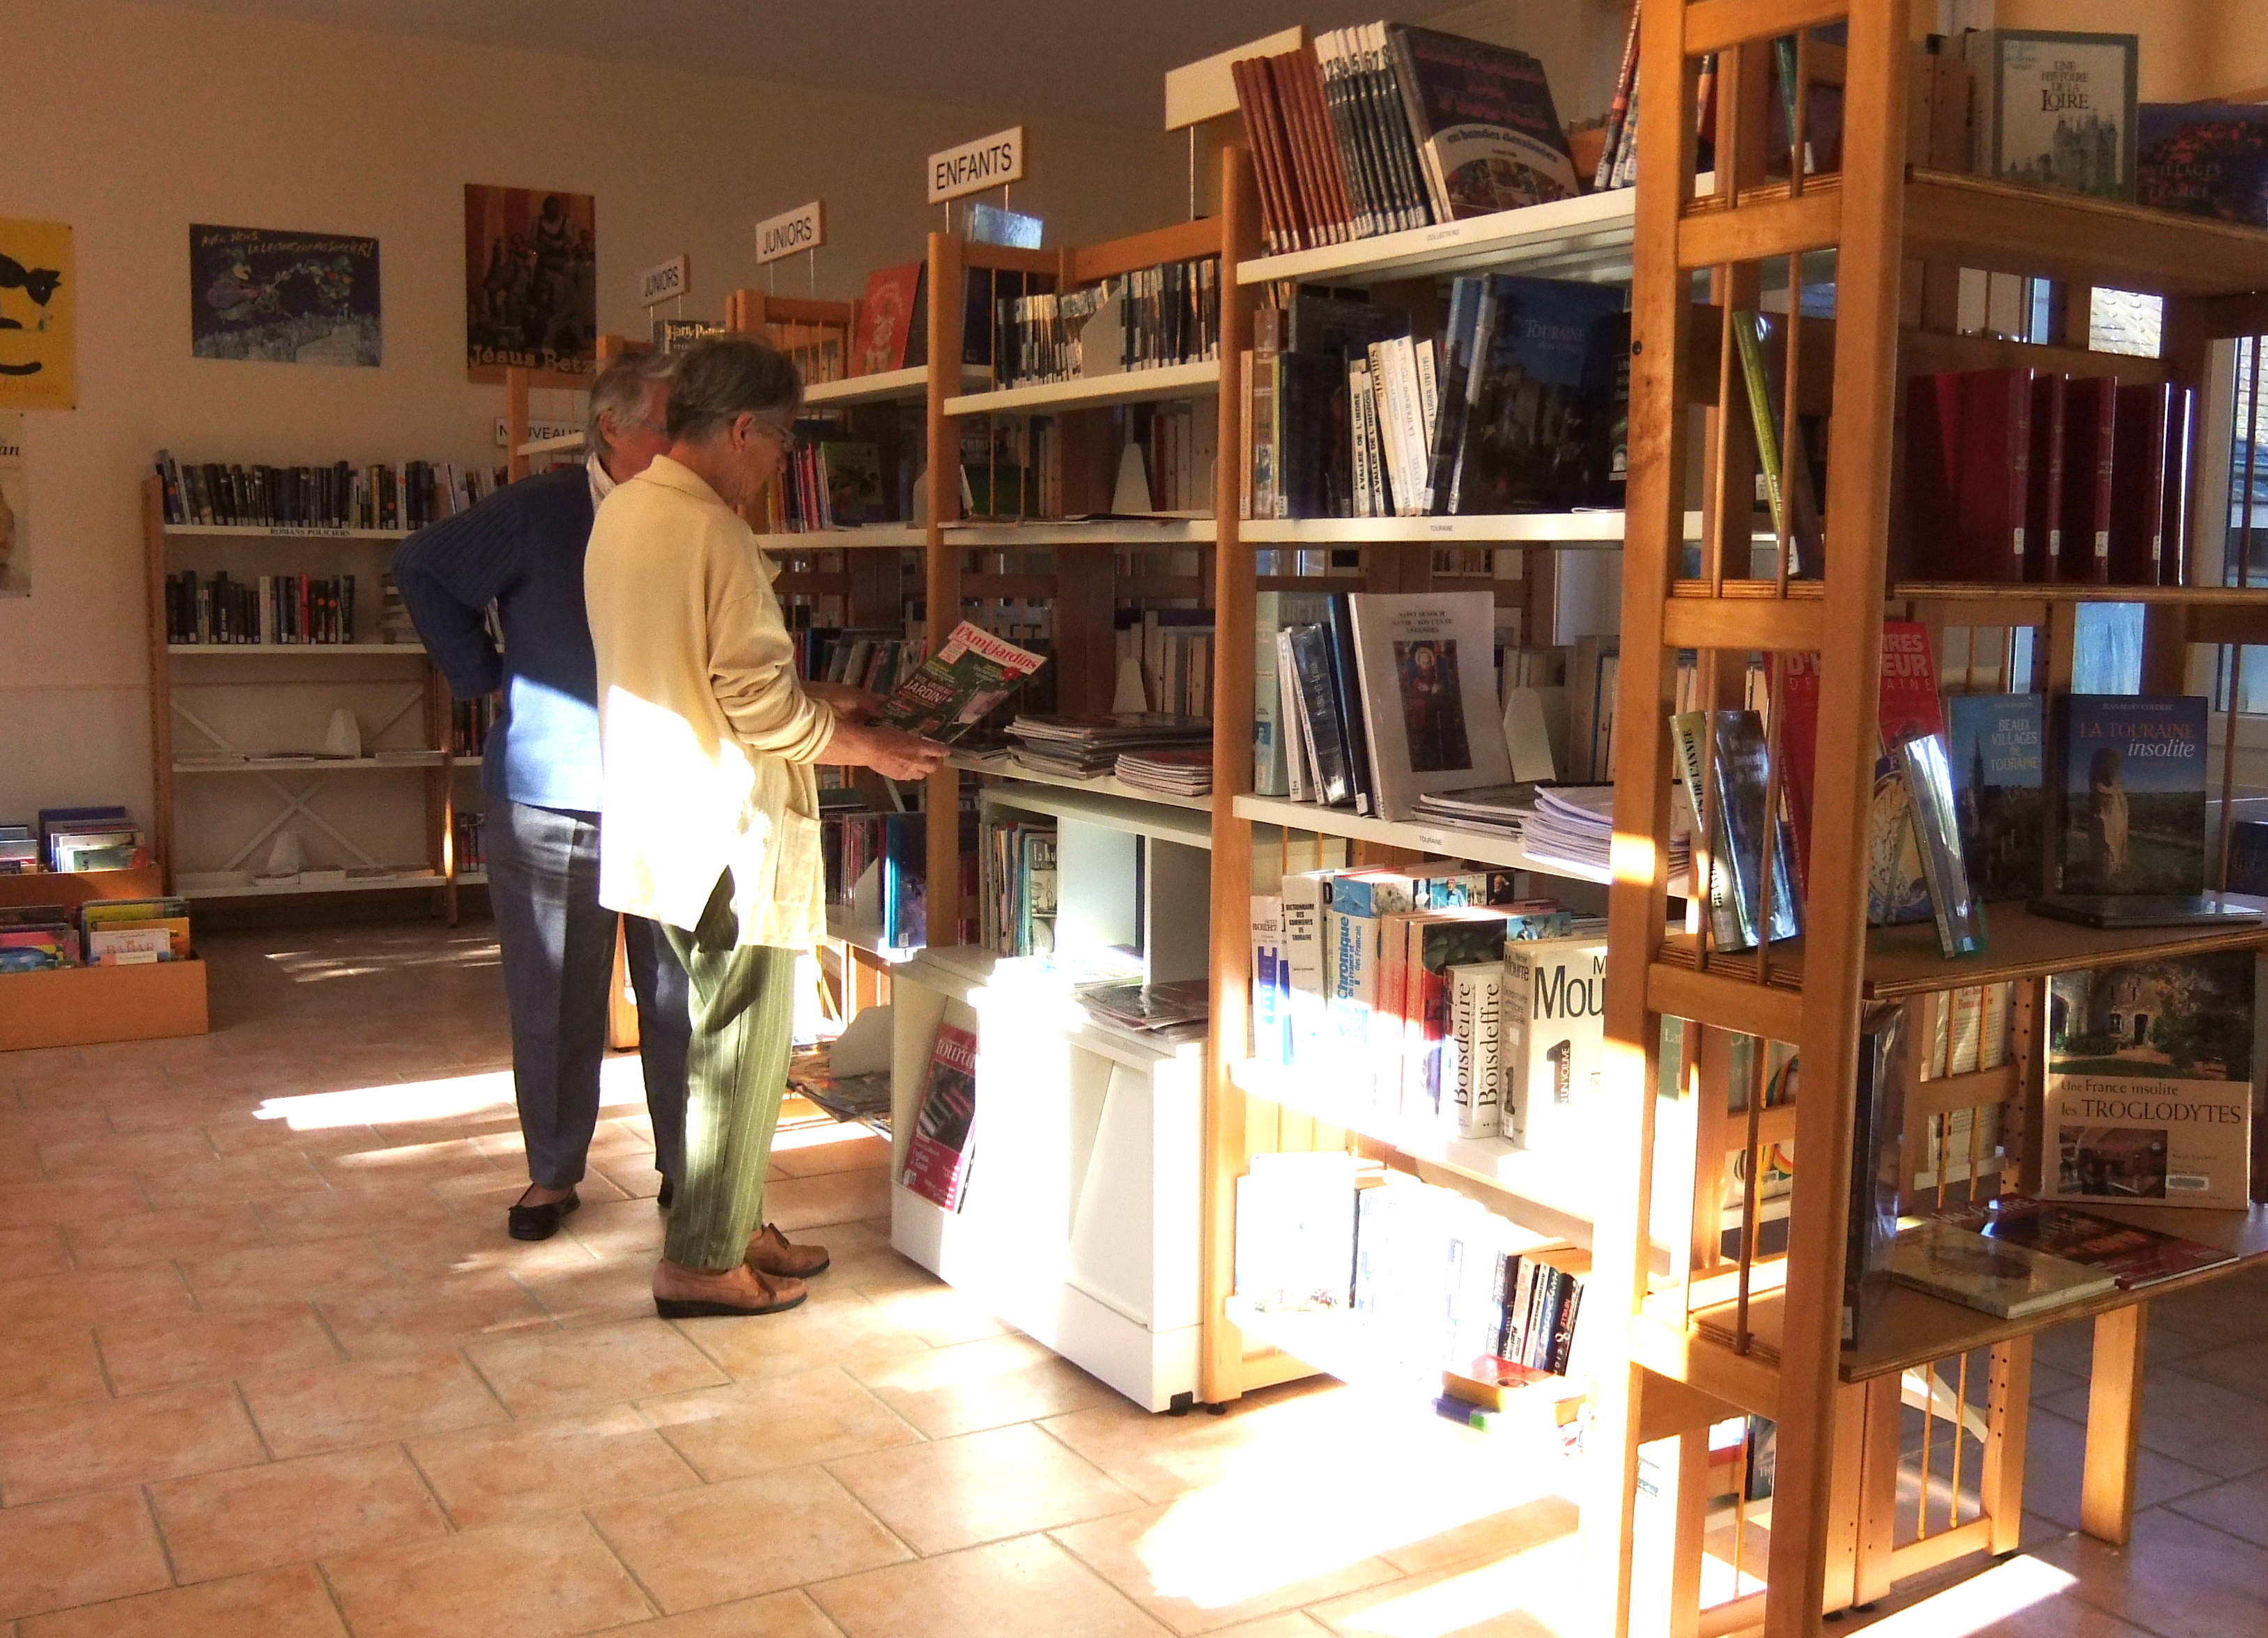 divers/biblioth-que-oct-2011.jpg